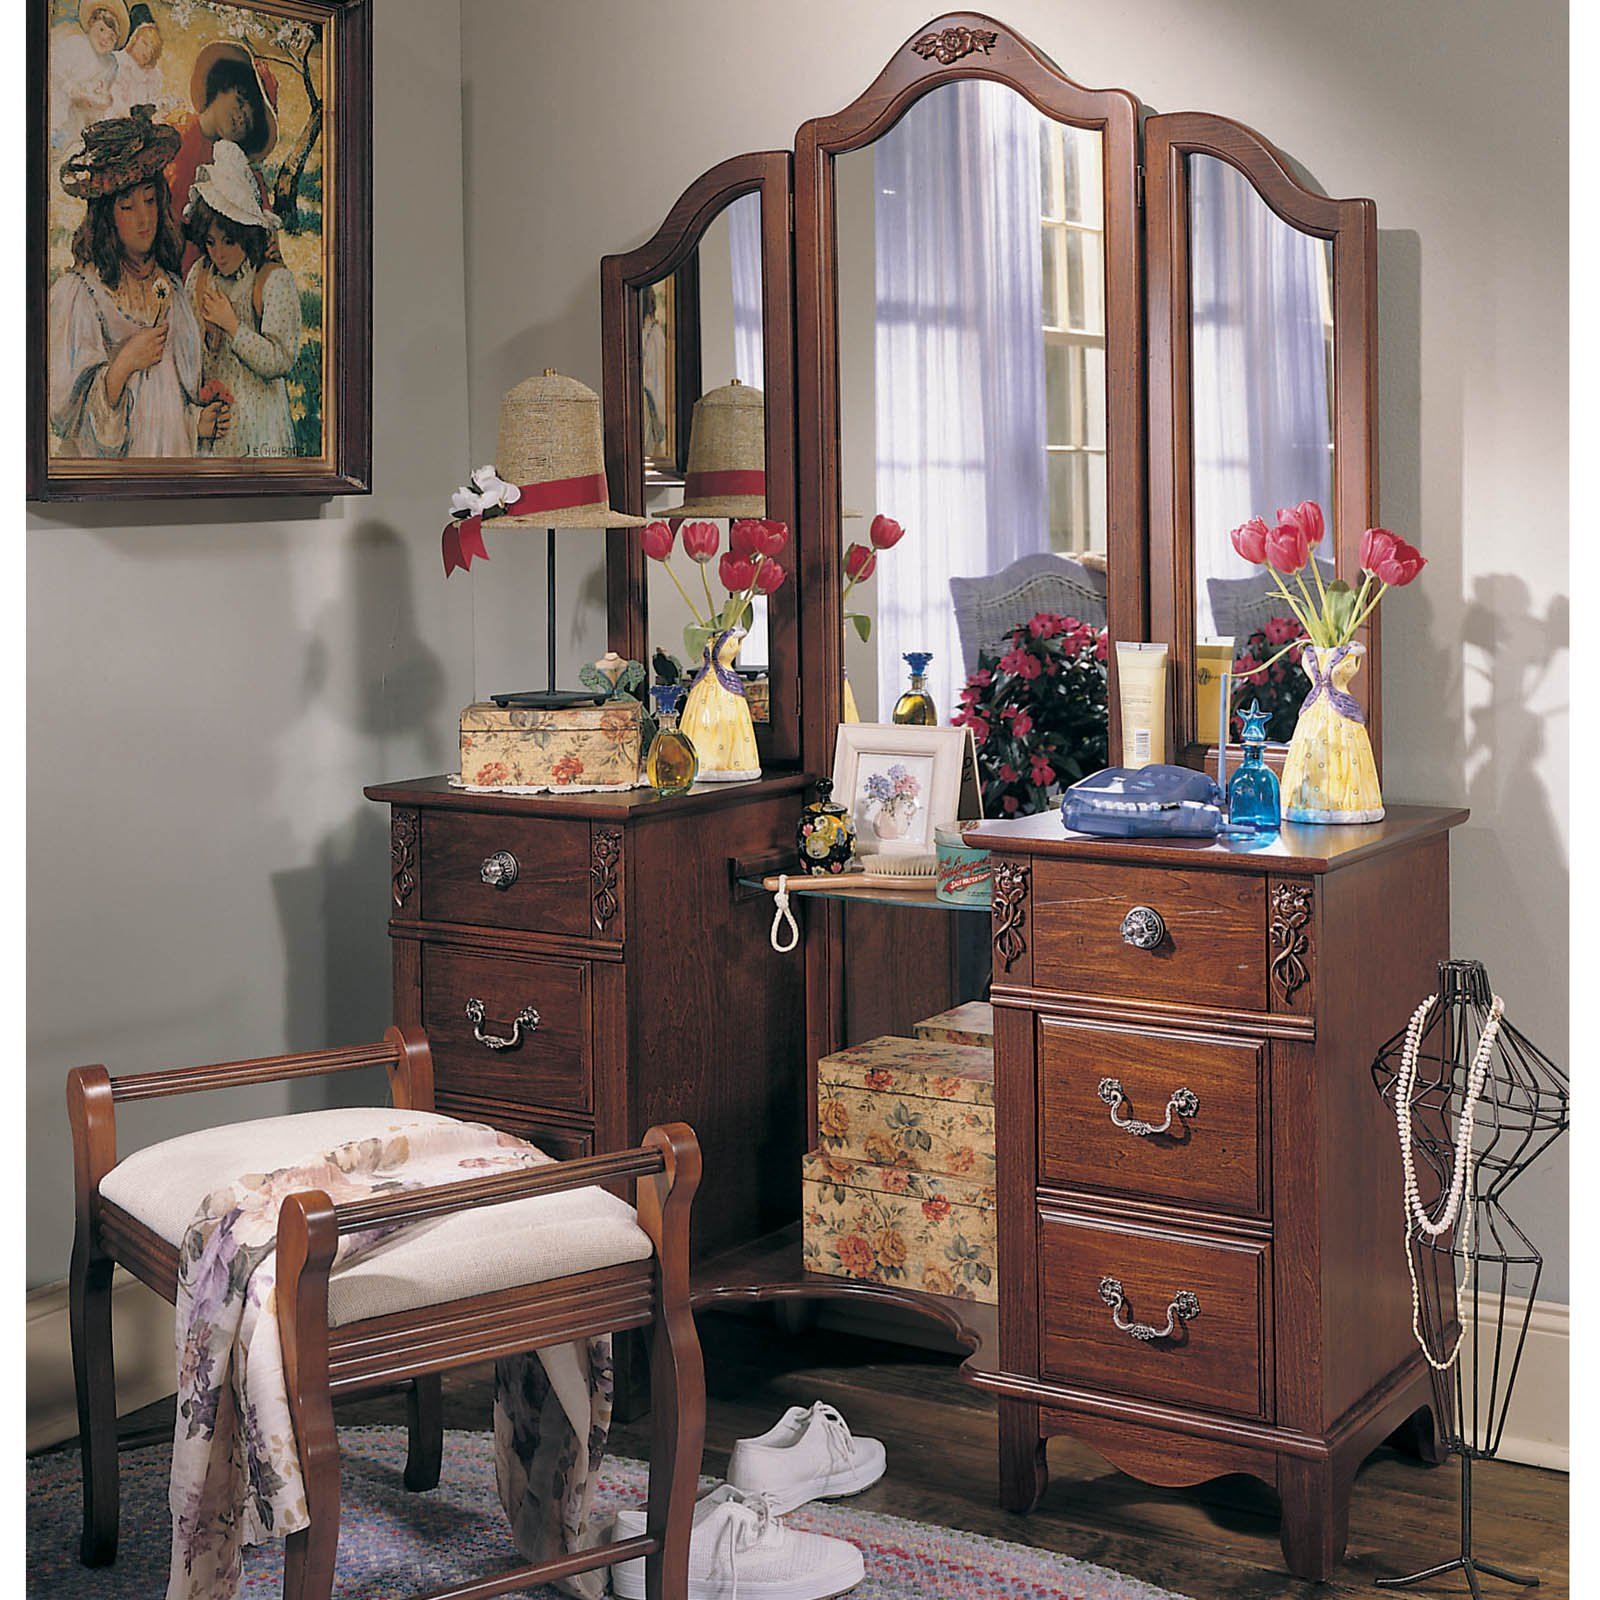 Picture of: Antique Bedroom Vanity Style